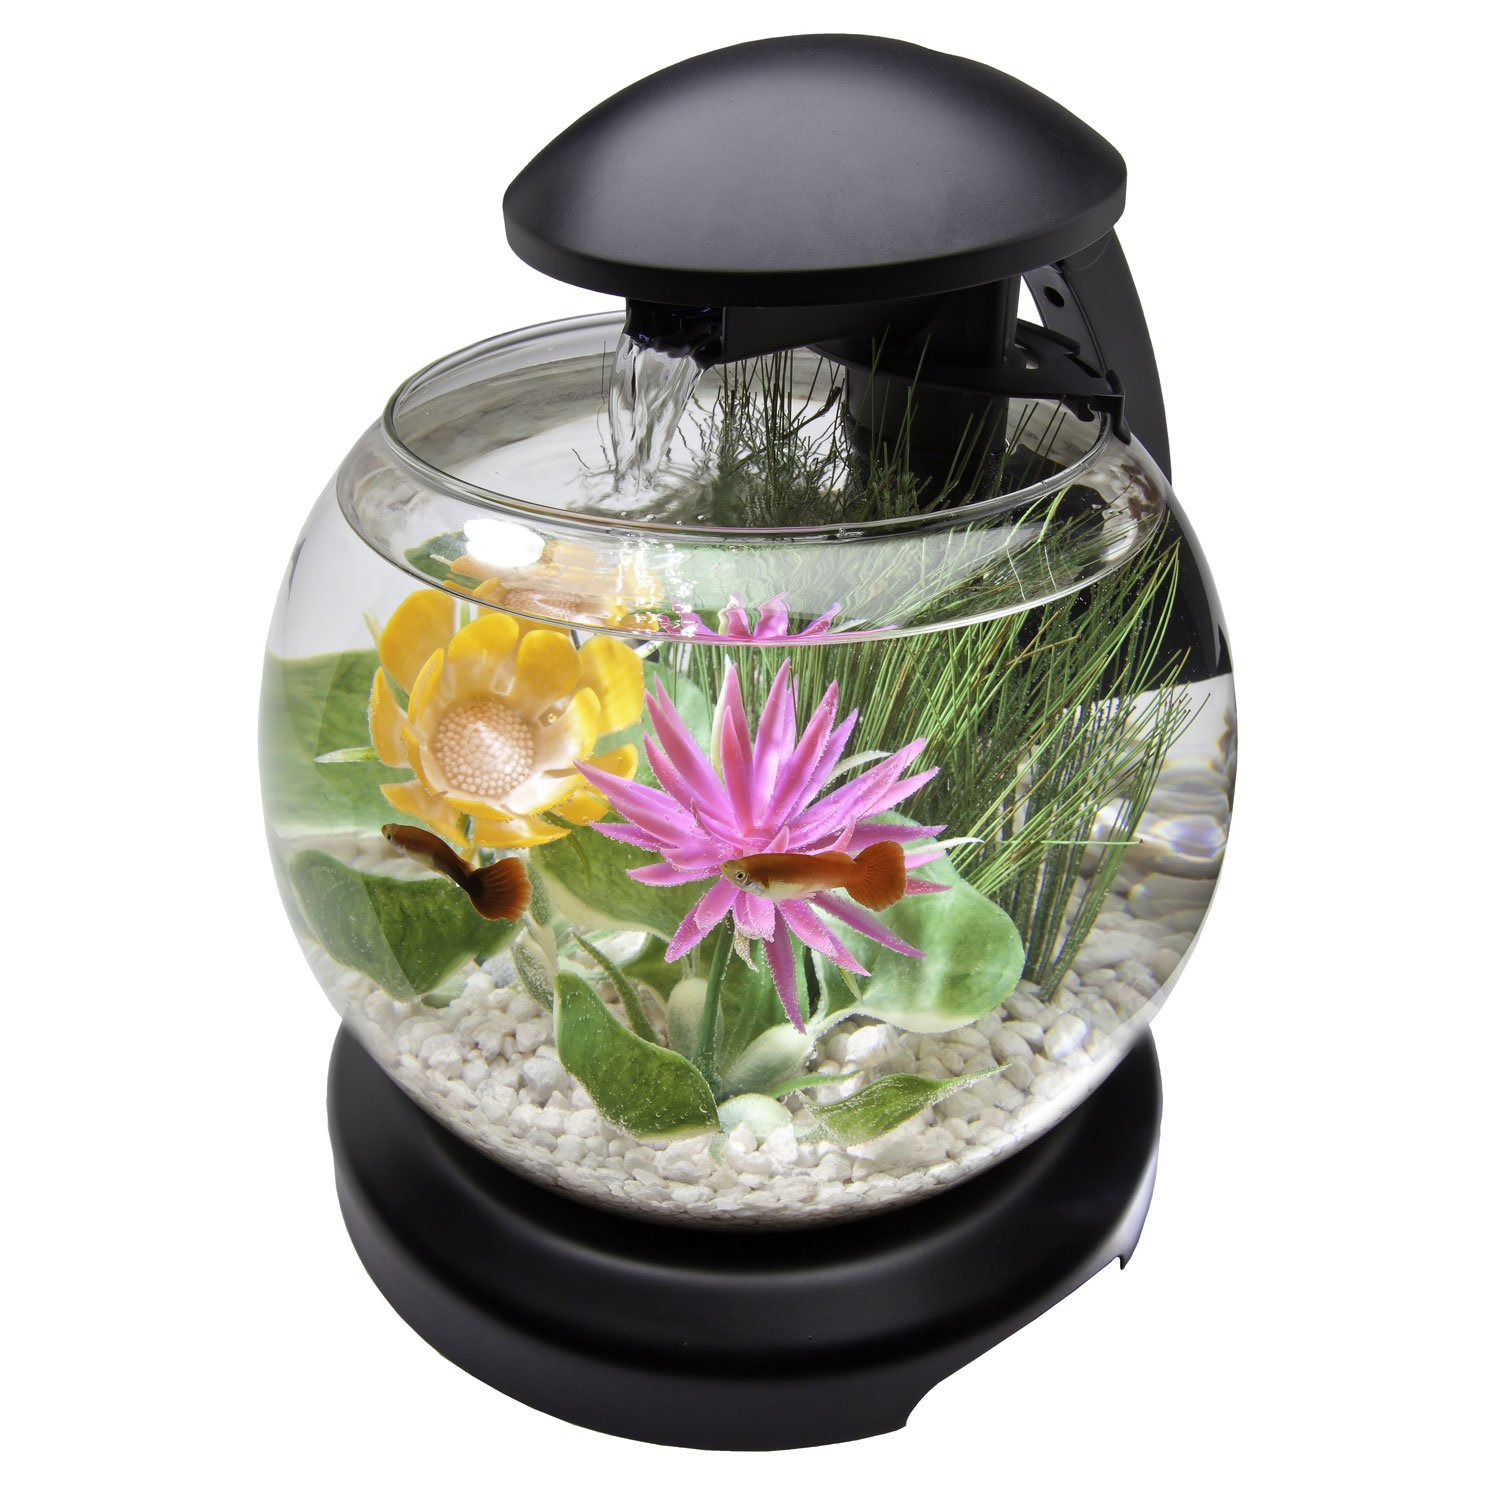 1 8 Gallon Compelling Globe Shaped Aquarium Kit Featuring An Advanced Led Lighting System Integrated Whisper Pow Aquarium Kit Tanked Aquariums Betta Fish Tank